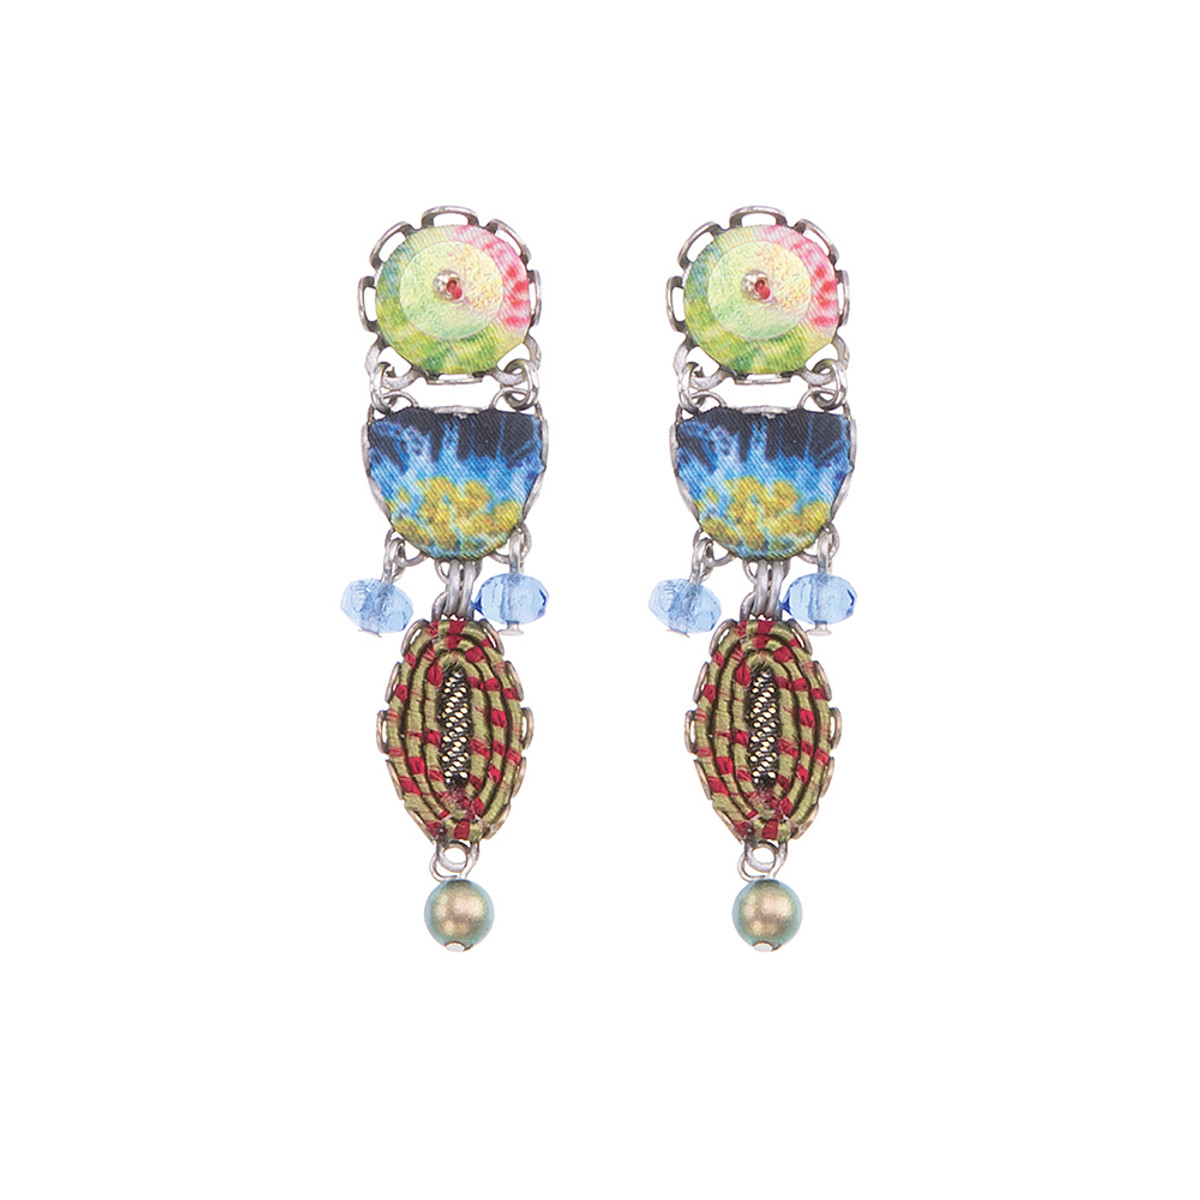 Ayala Bar Fiesta Green Watercolor Earrings